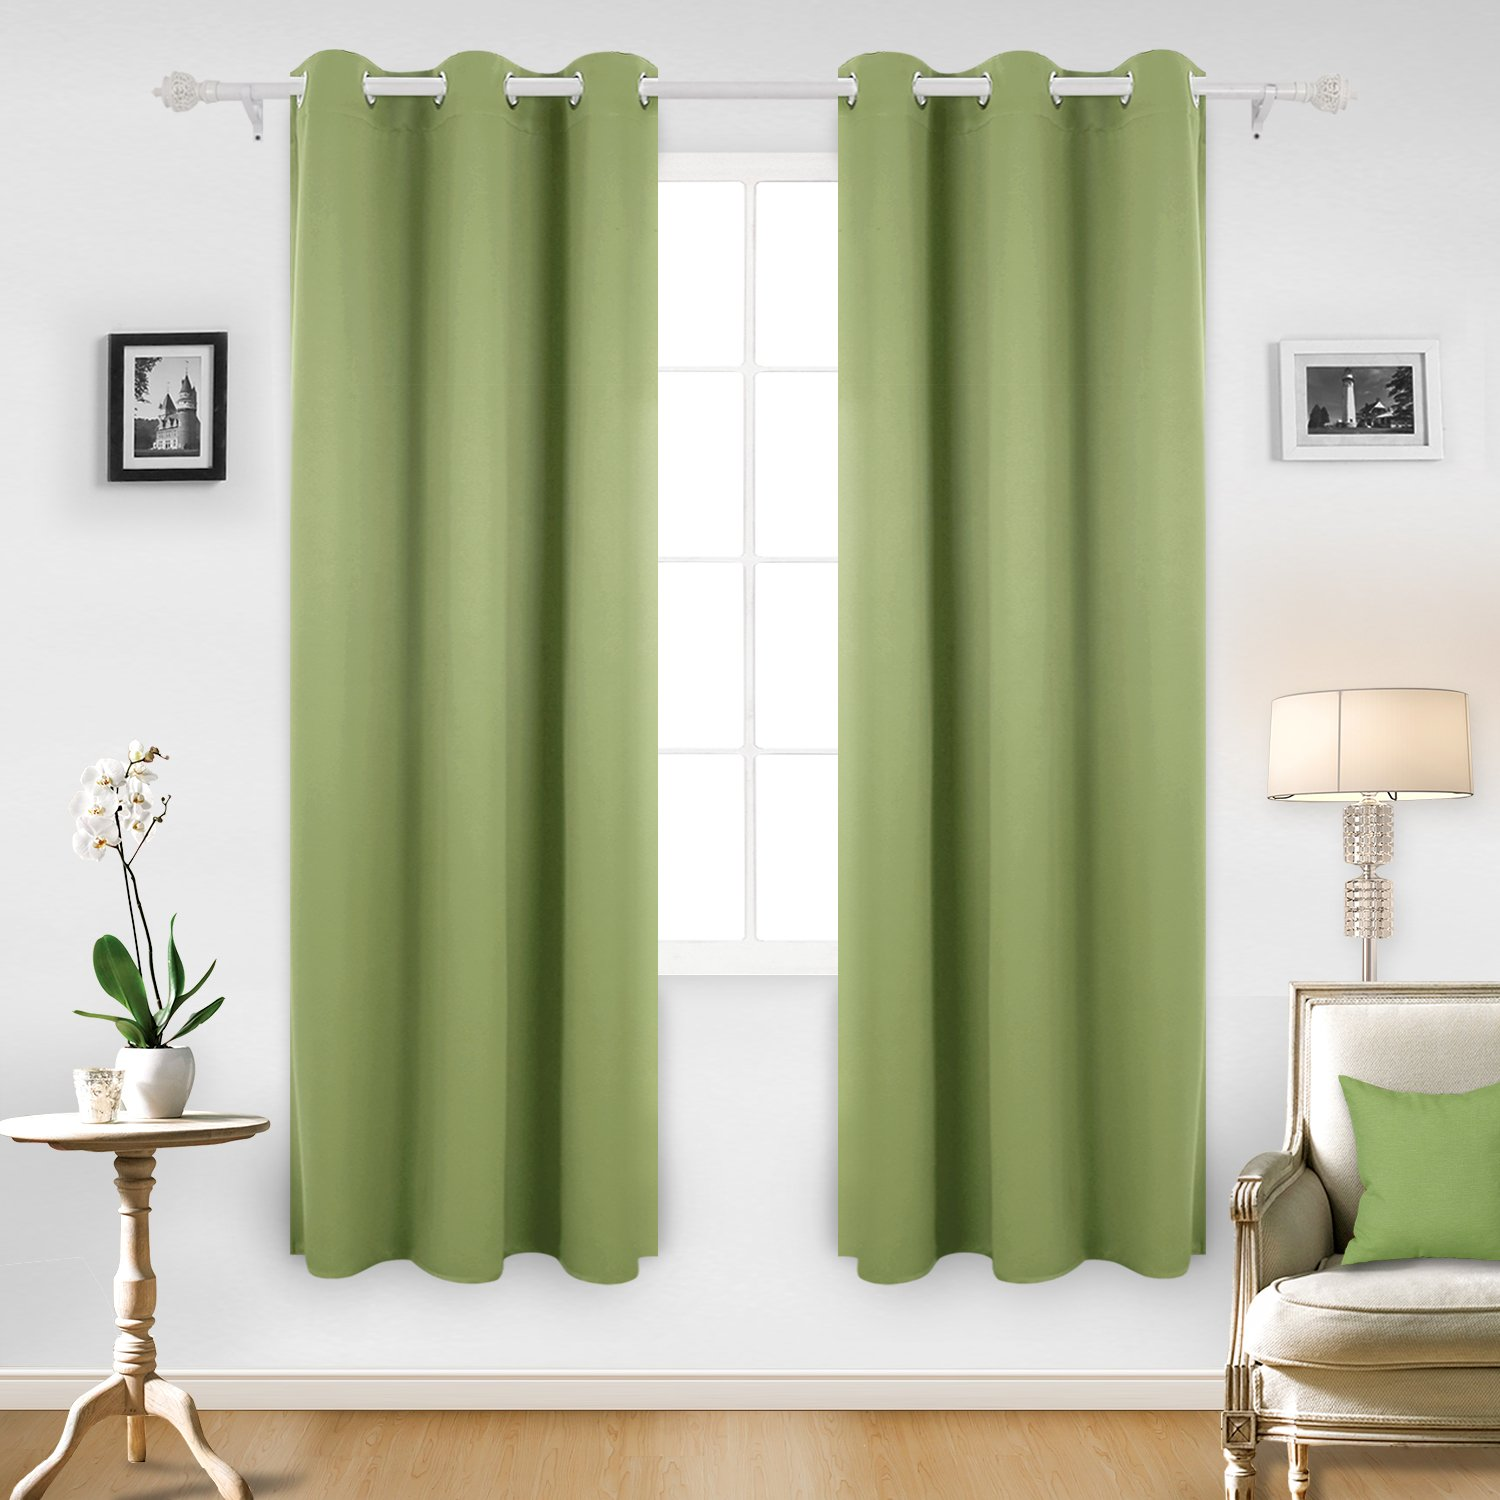 Deconovo Room Darkening Thermal Insulated Blackout Grommet Window Curtain Panel For Bedroom Room Nile